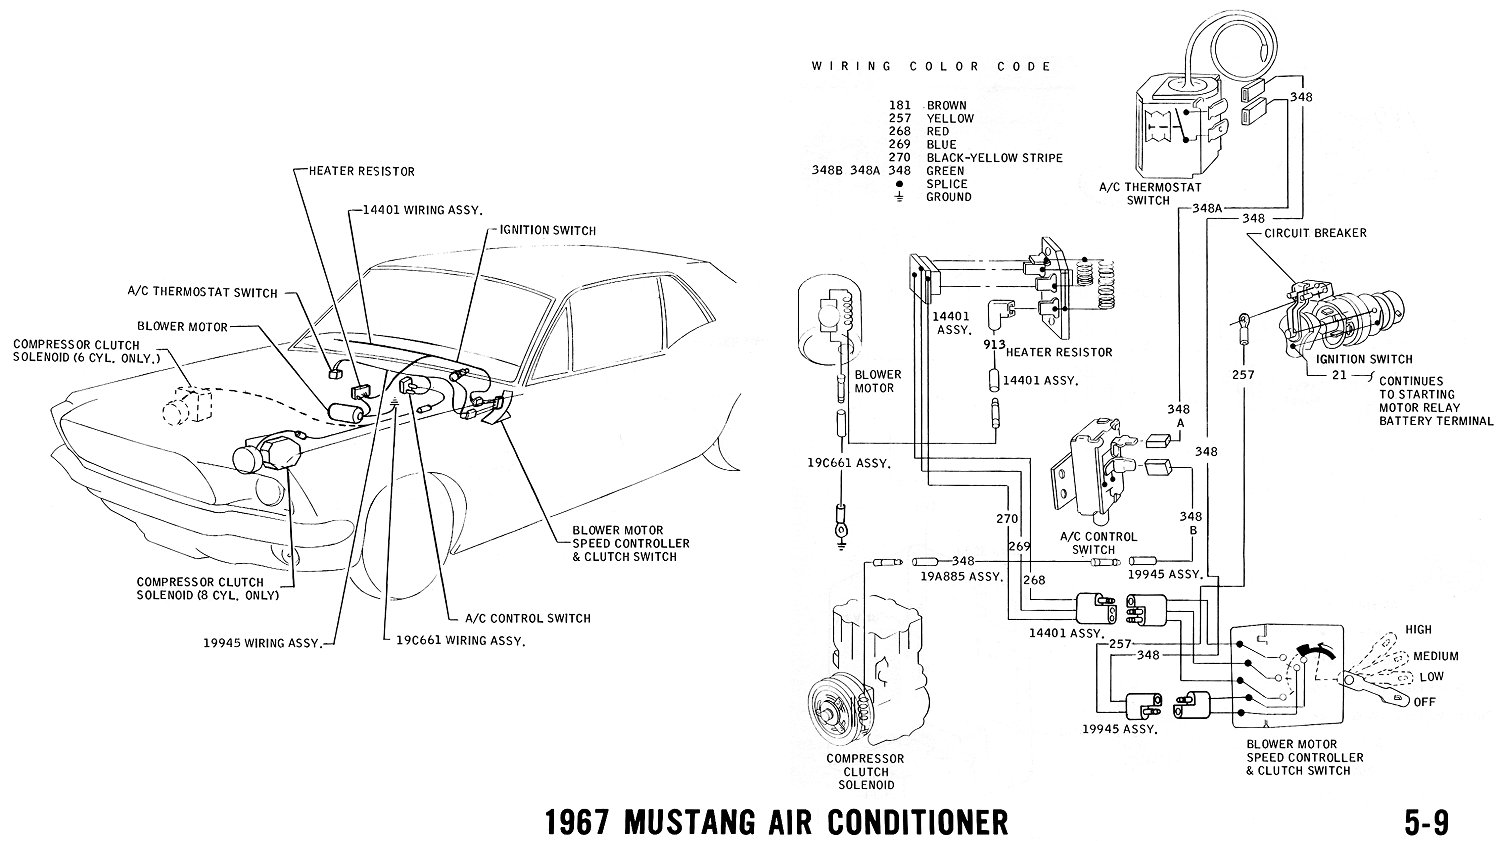 1967 Mustang Alternator Wiring Diagram : Mustang wiring diagram free get image about